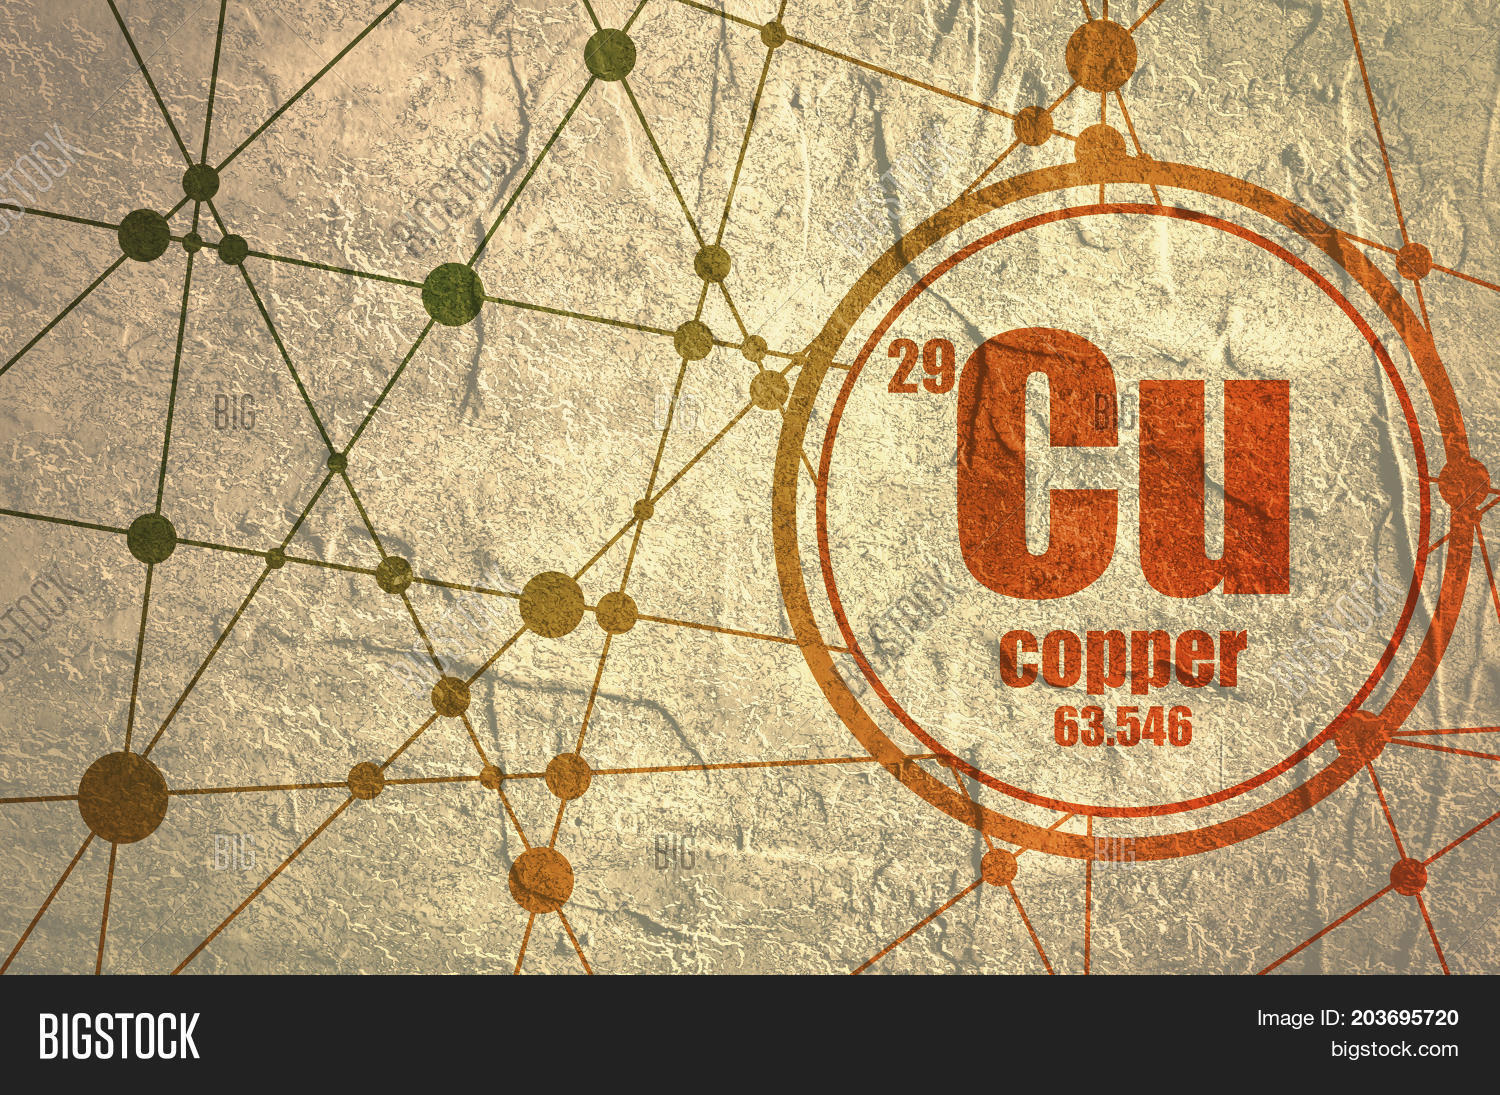 Copper chemical image photo free trial bigstock copper chemical element sign with atomic number and atomic weight chemical element of periodic urtaz Image collections